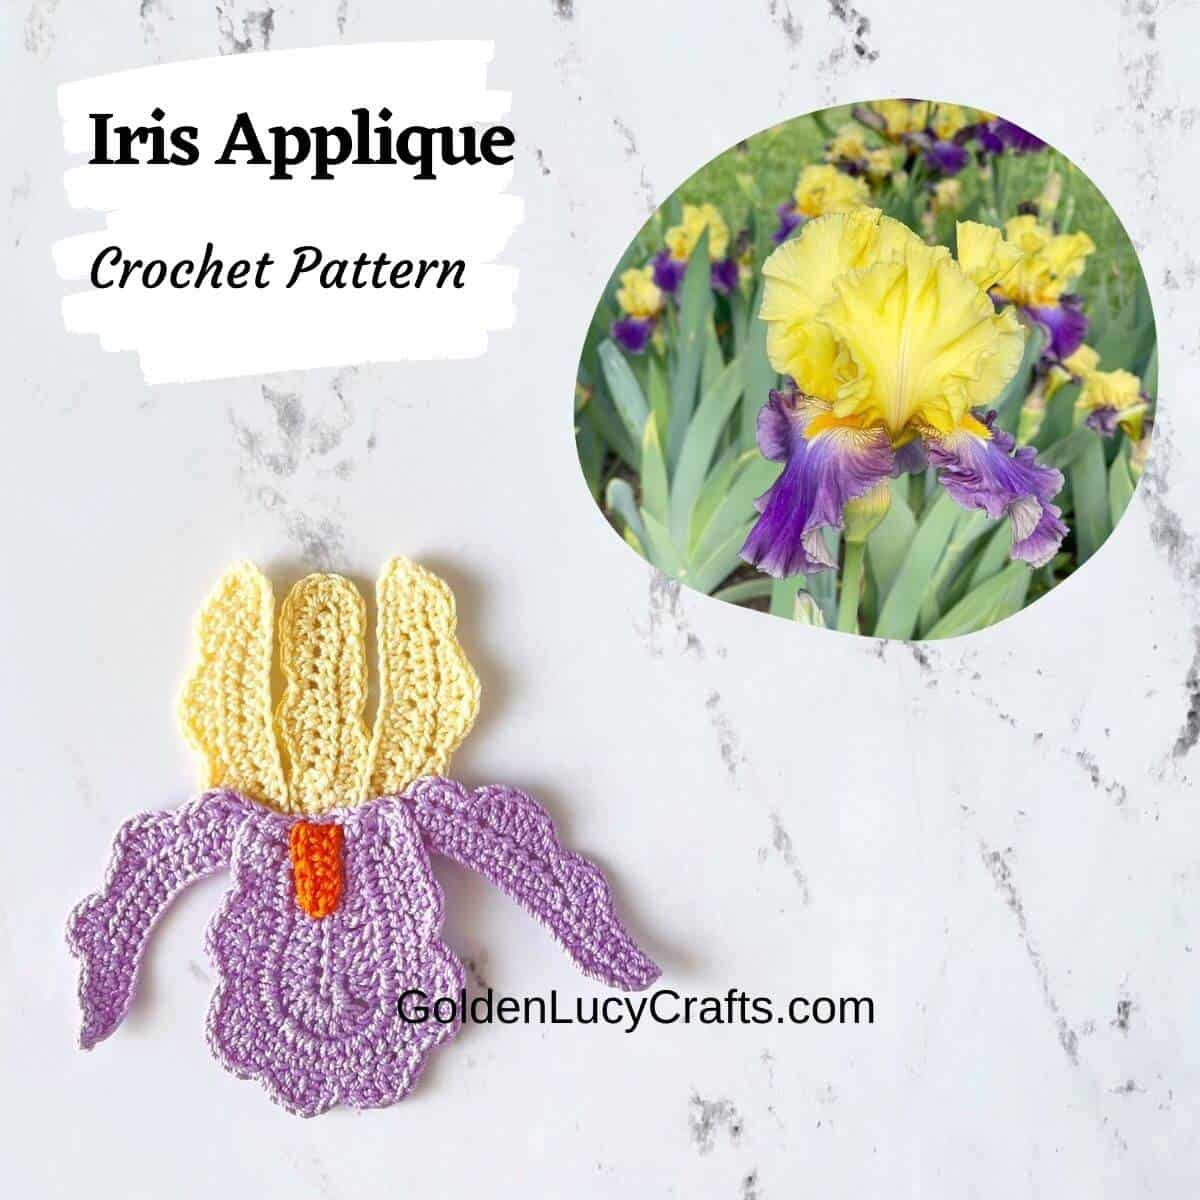 Crochet iris applique on the bottom, real iris picture on top.